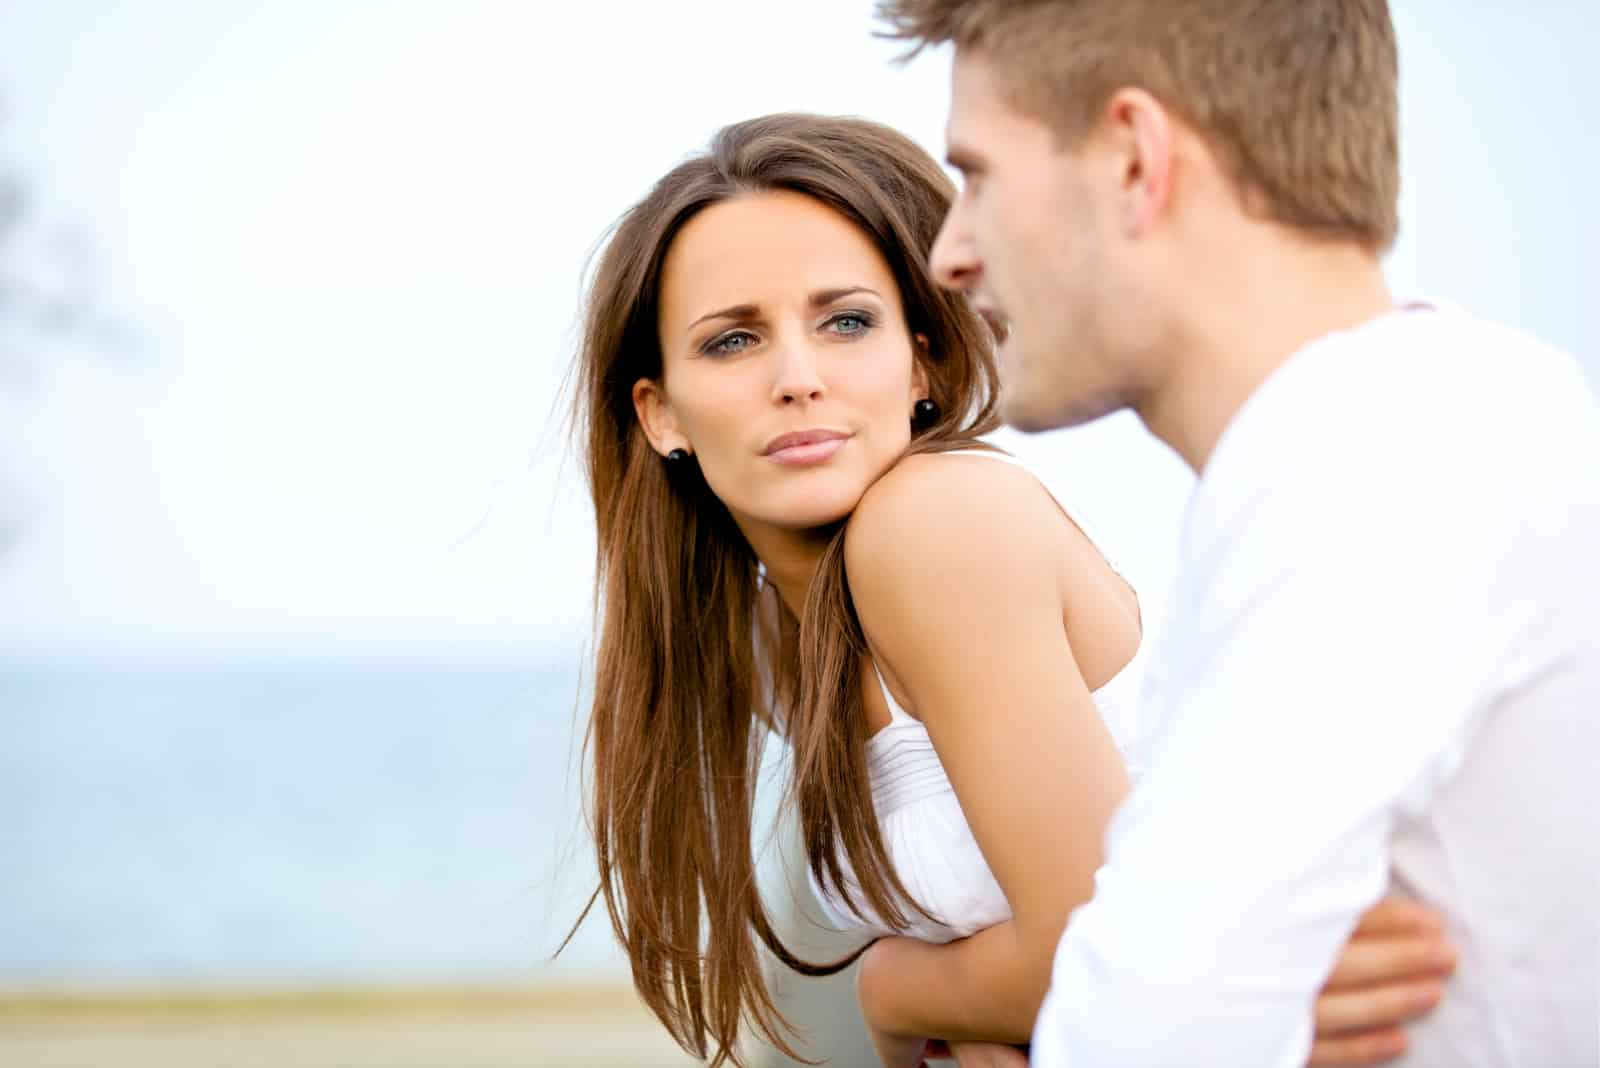 woman in white top listening to man outdoor